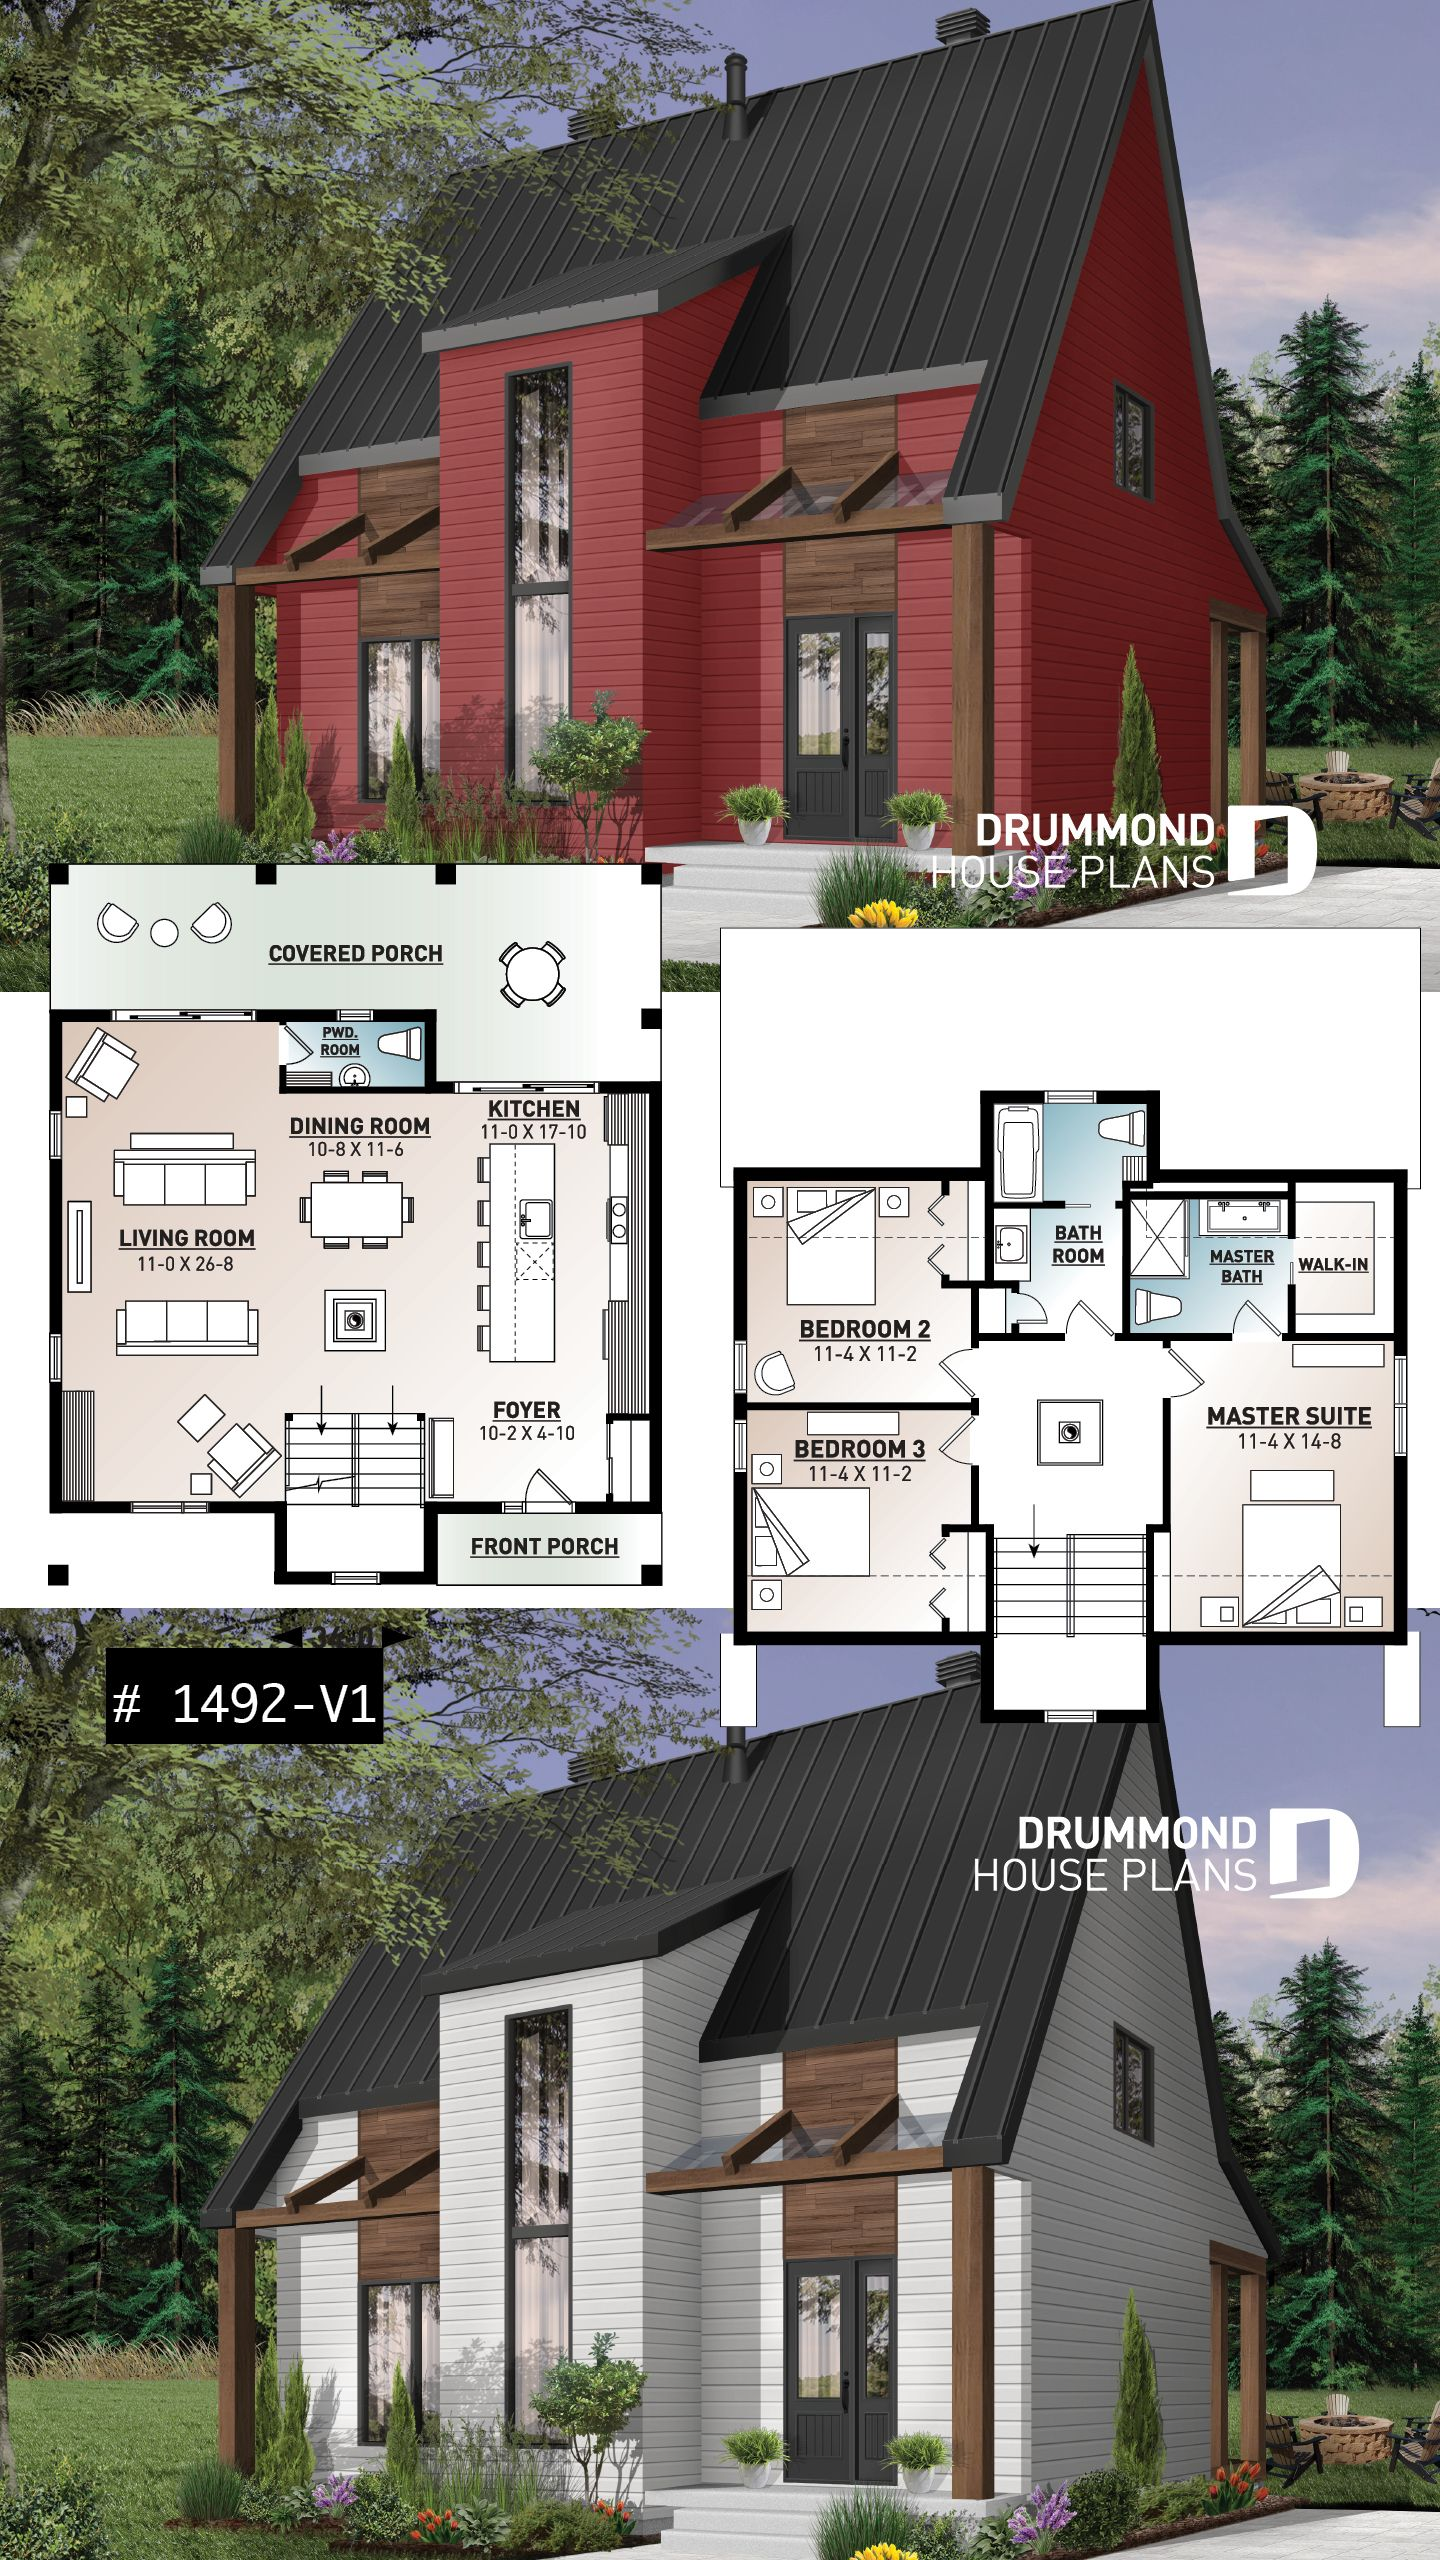 SCANDINAVIAN HOME PLAN WITH 3 BEDROOM, MASTER SUITE AND OPEN FLOOR